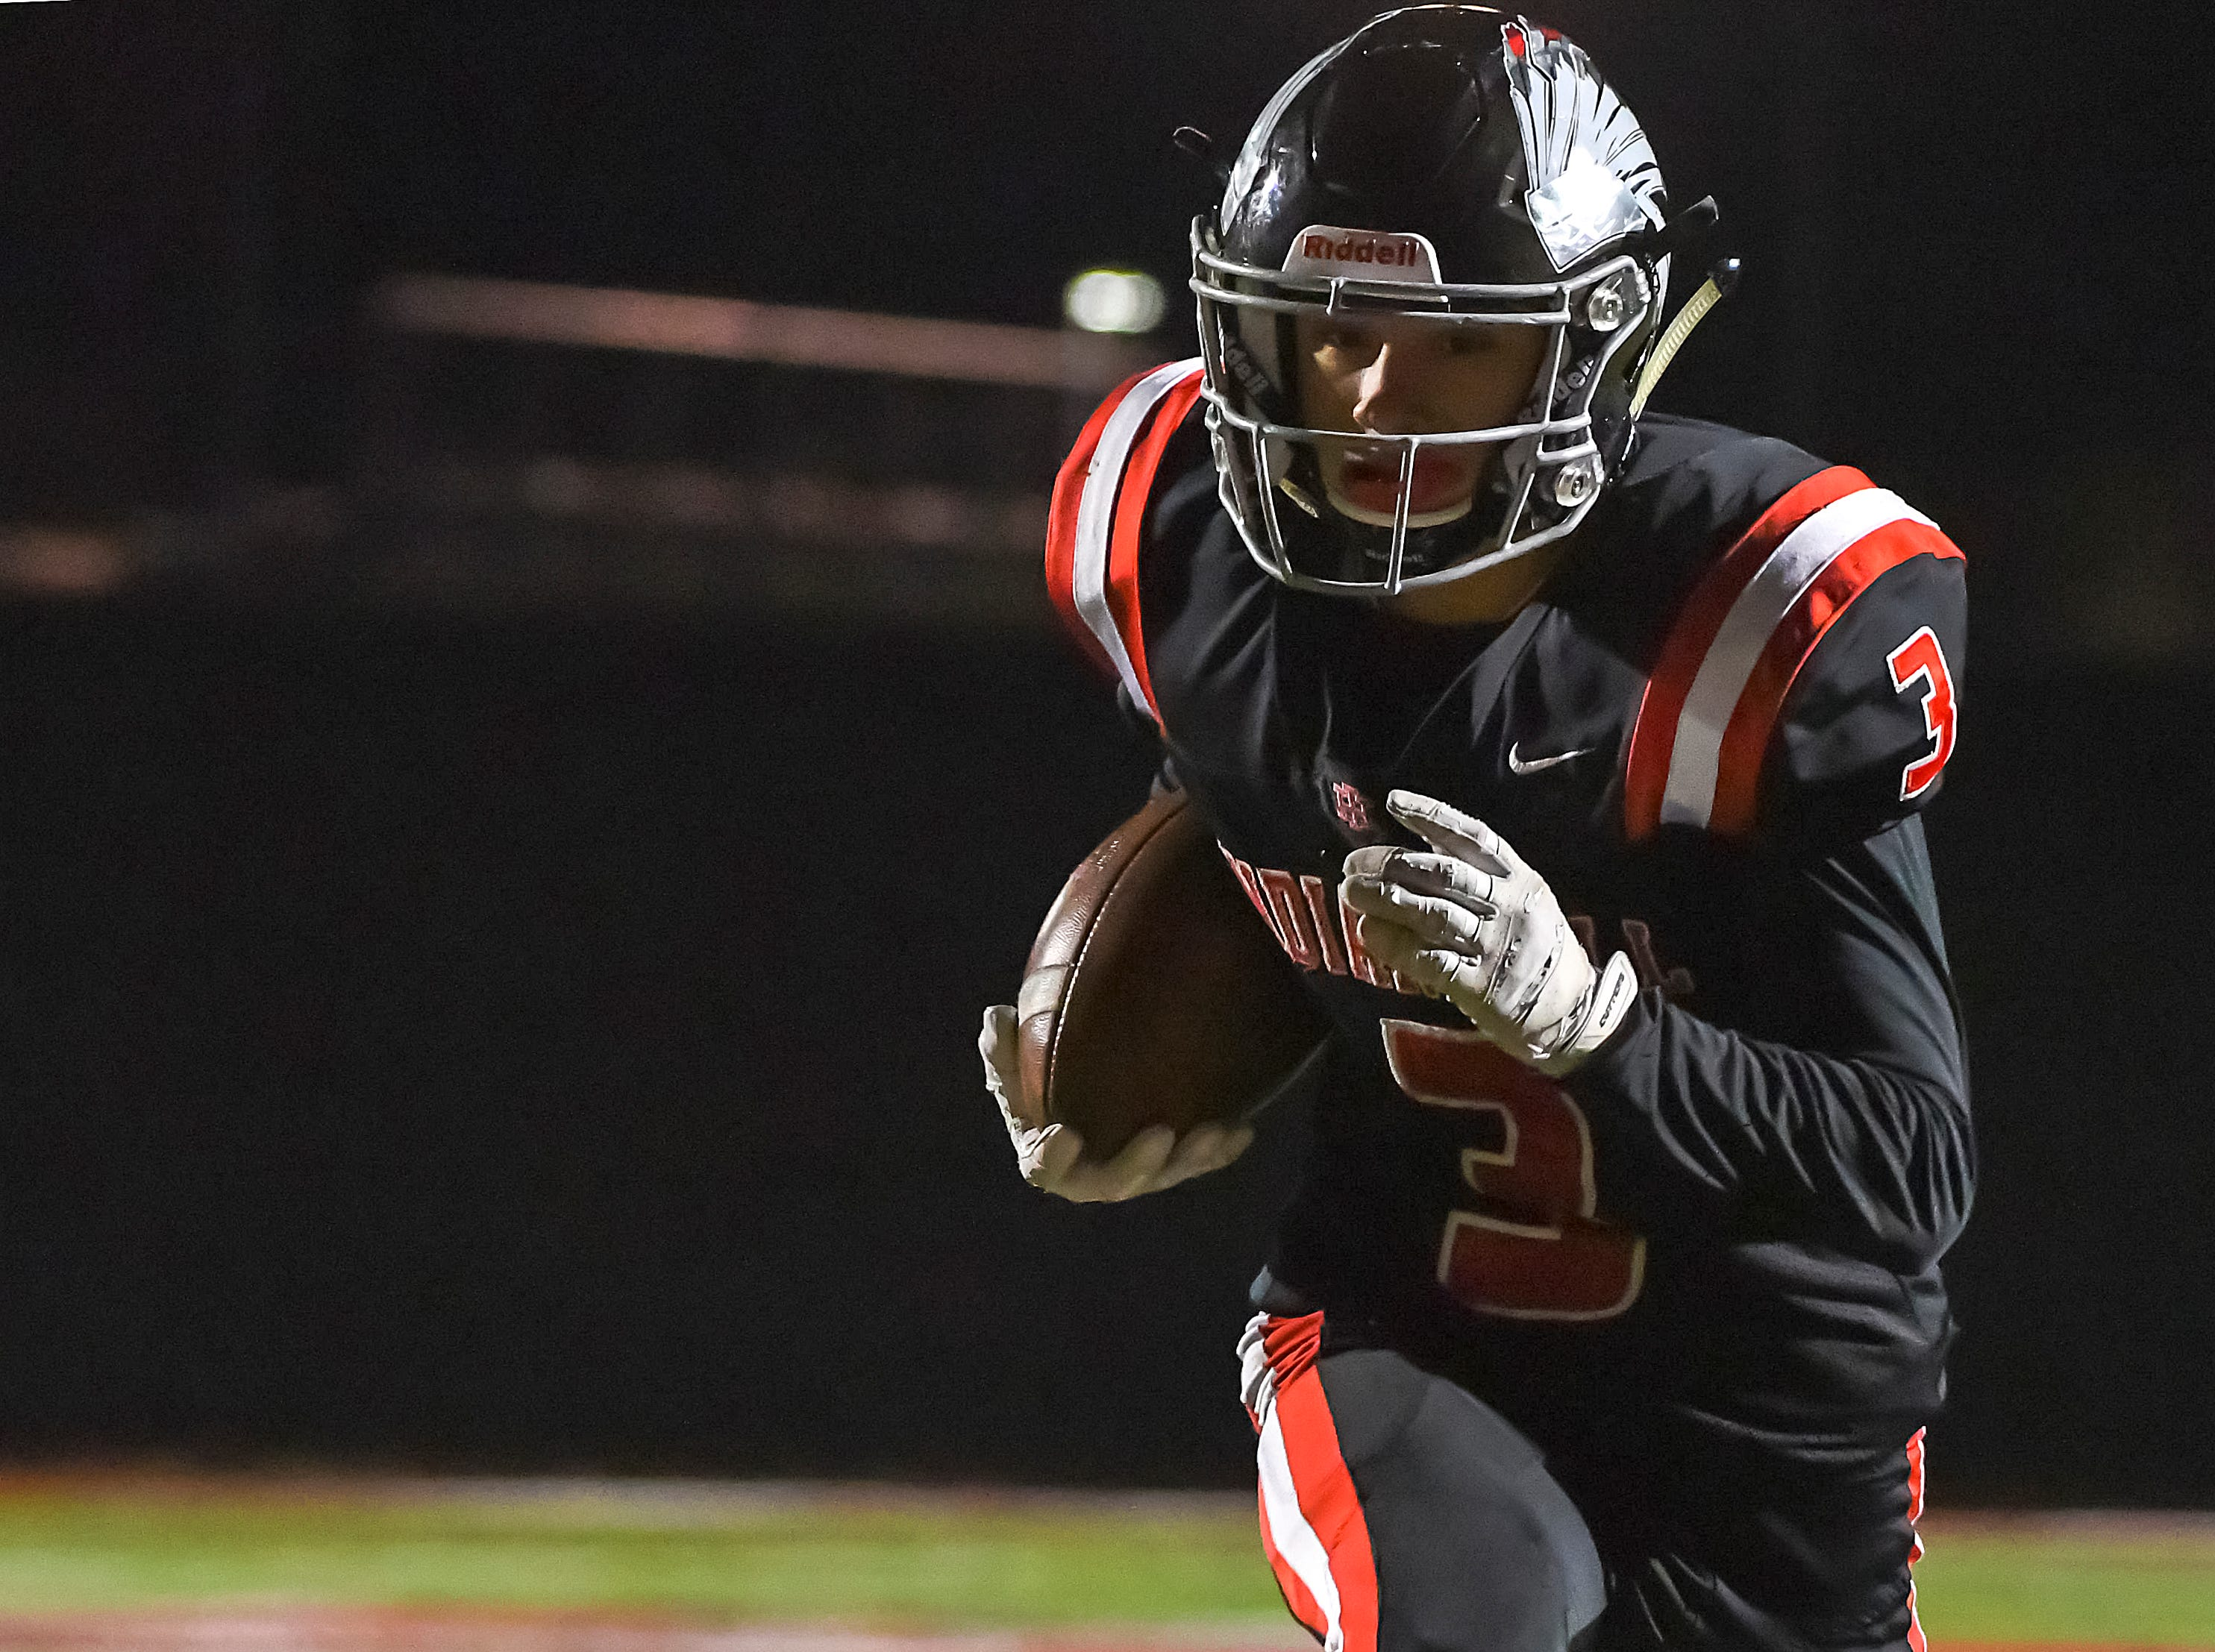 Trey Lopez of Indian Hill scores a touchdown against Waverly in the OHSAA D4 Region 16 Playoffs at Indian Hill High School, Saturday, Nov. 3, 2018